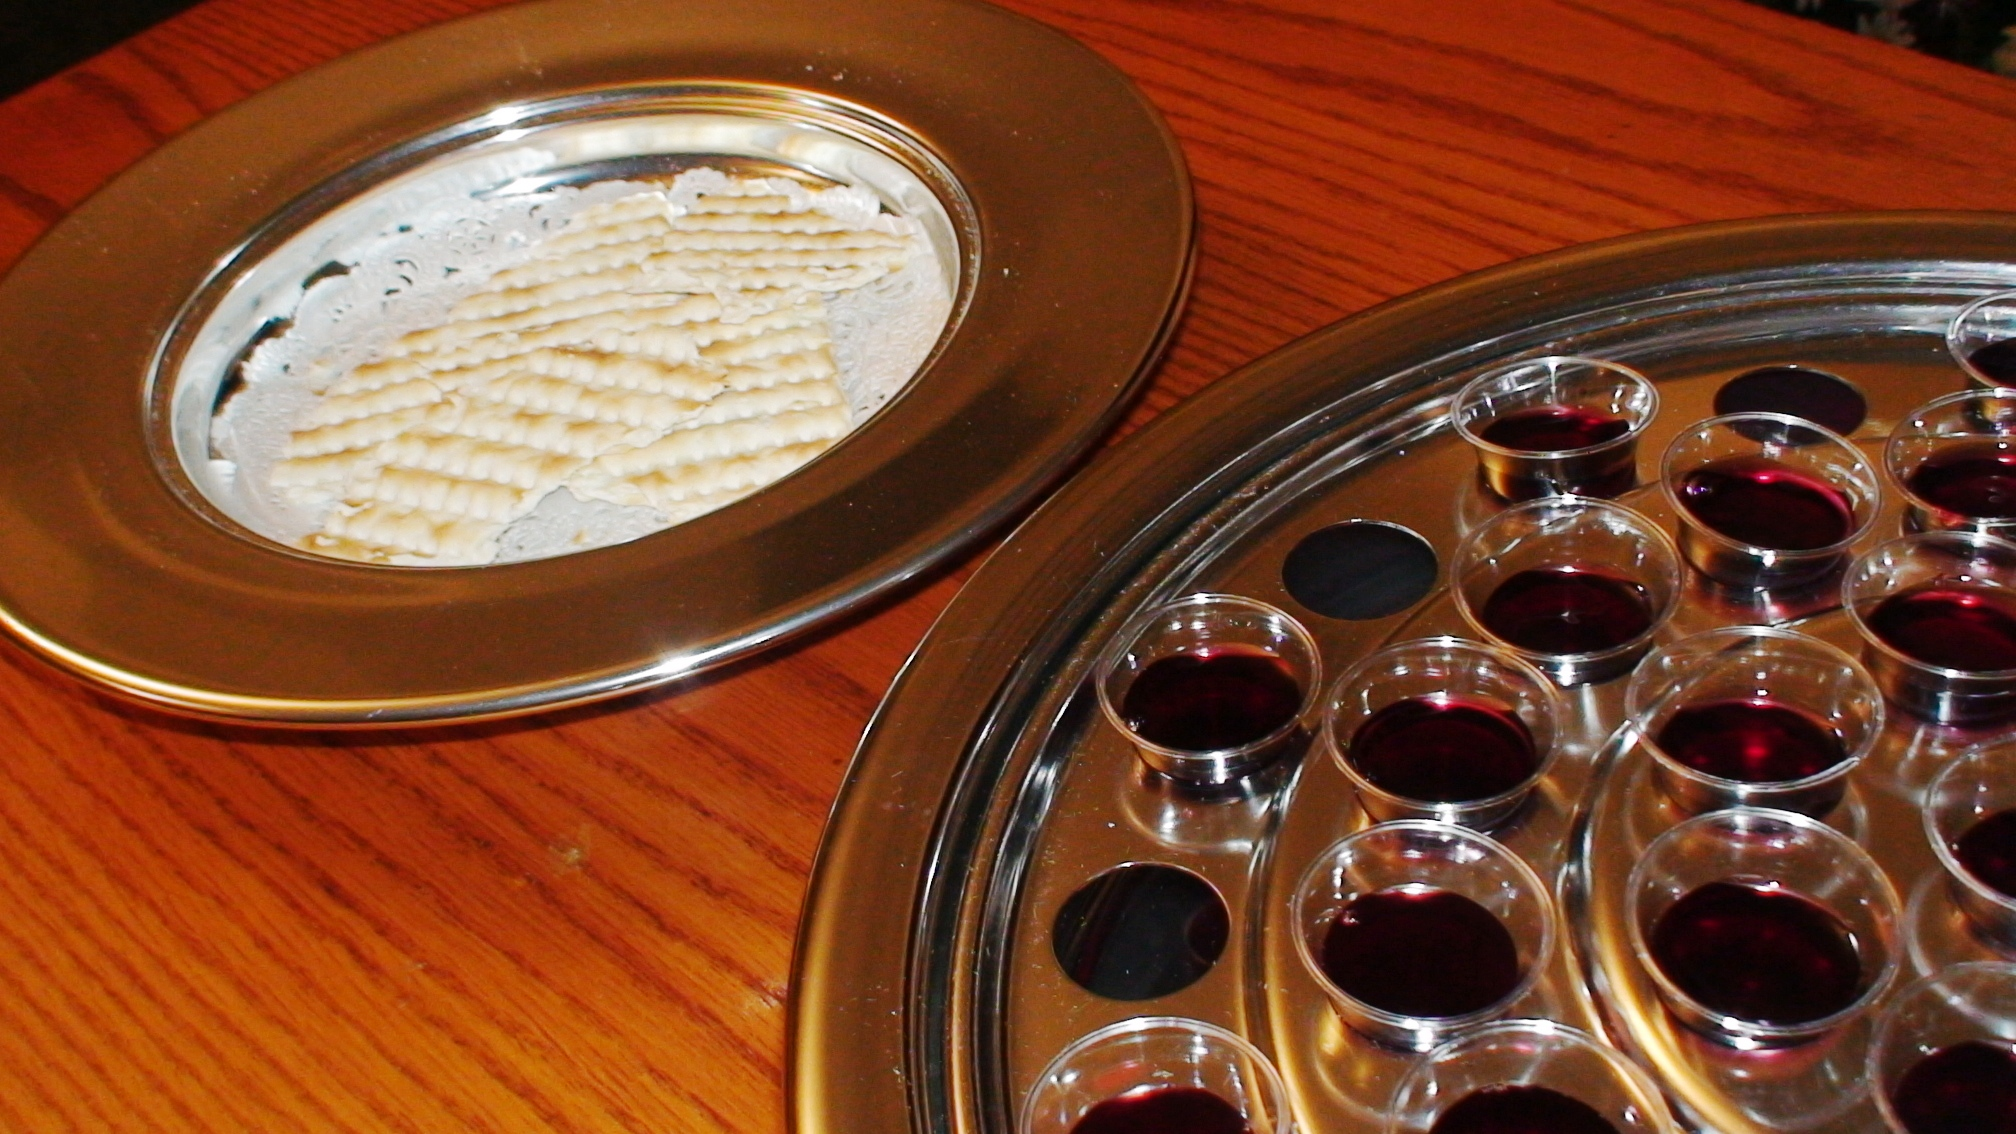 Ten Things About The Lord S Supper